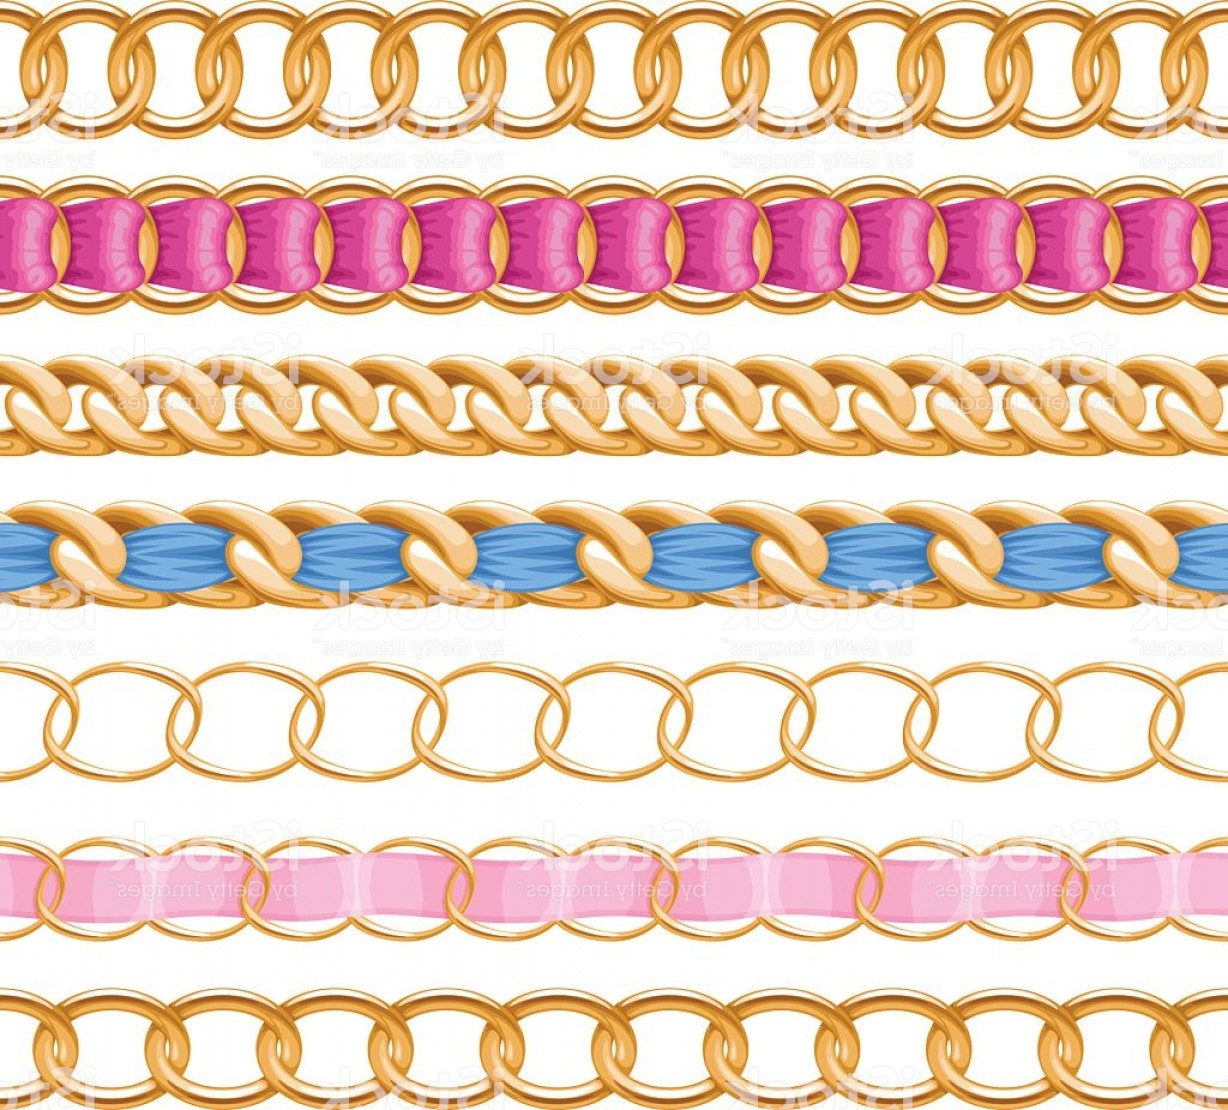 Fabric Orange Ribbon Vector: Golden Chains Set With Colorful Fabric Ribbon Vector Brush Gm